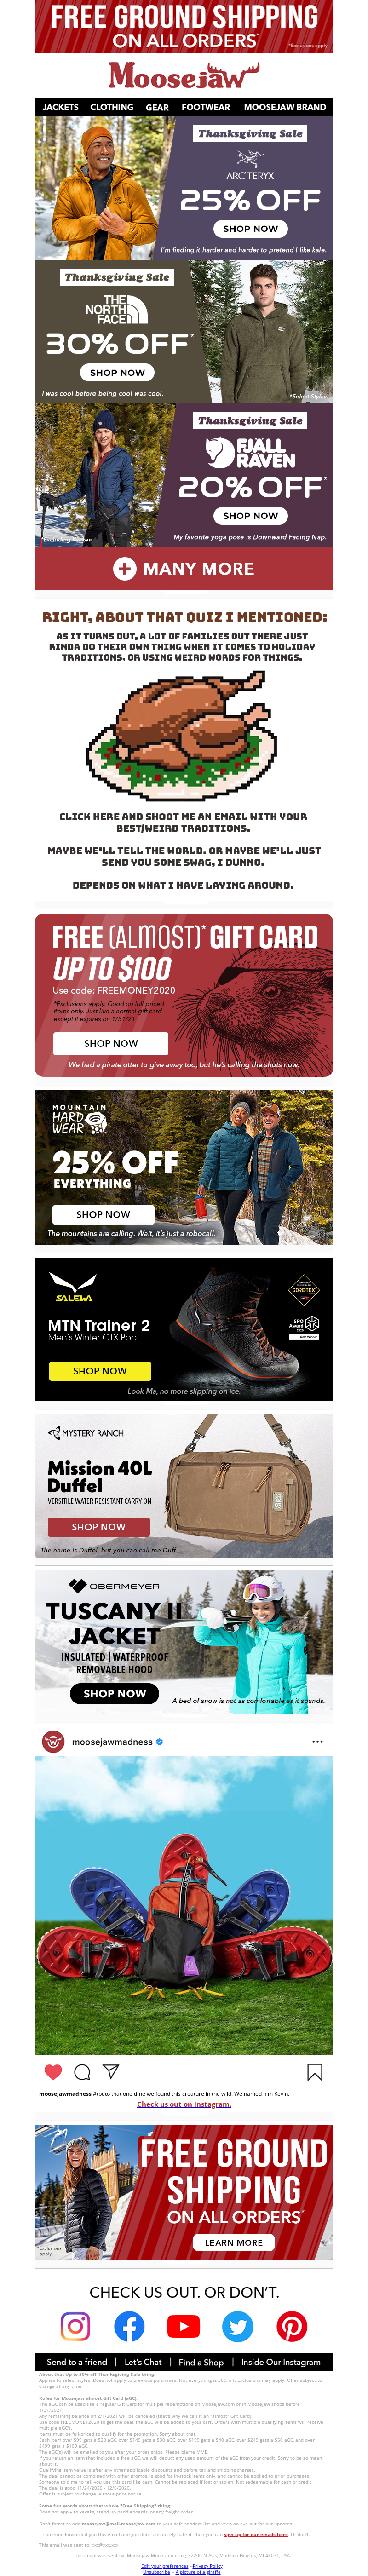 Promotional thanksgiving email example from Moosejaw